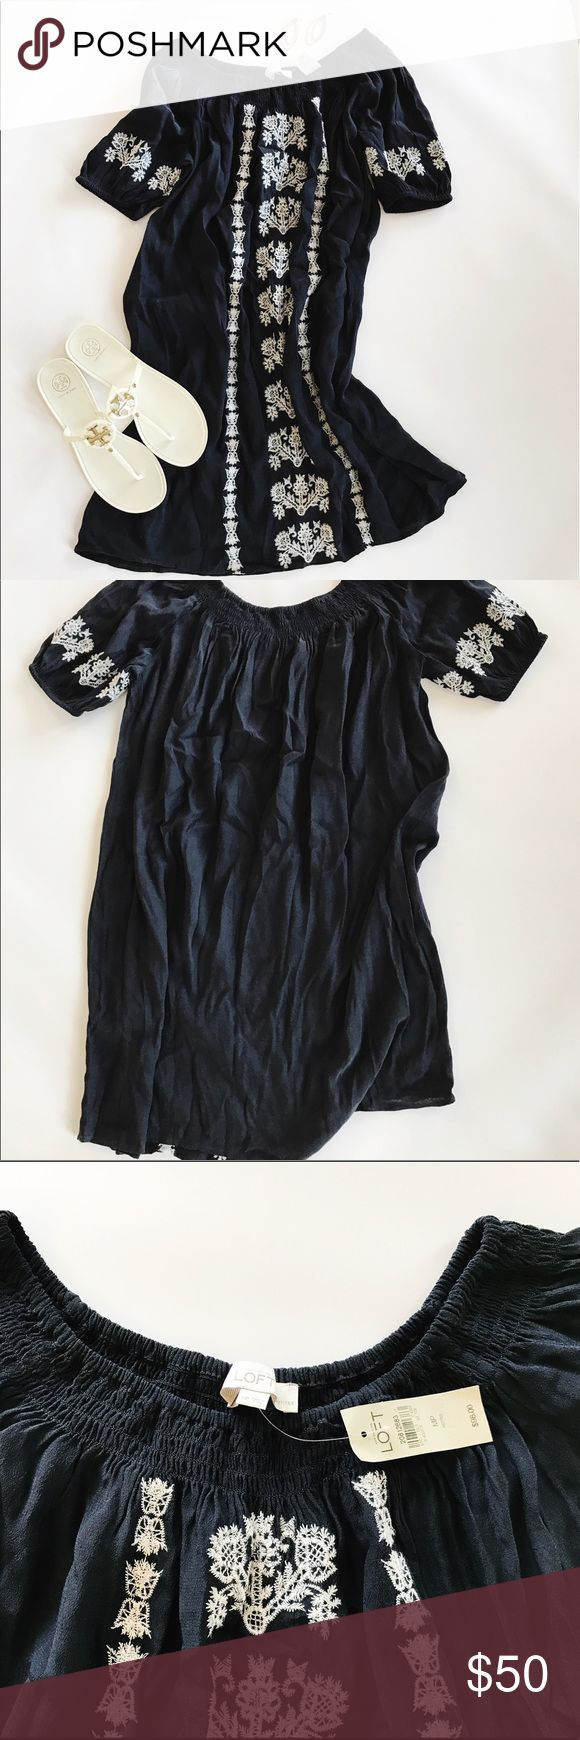 NWT LOFT  La Bonita dress LOFT off the shoulder navy blue dress with embroidered sleeves and front.  Super cute and very comfortable. Size medium petite but dress runs a bit large. LOFT Dresses